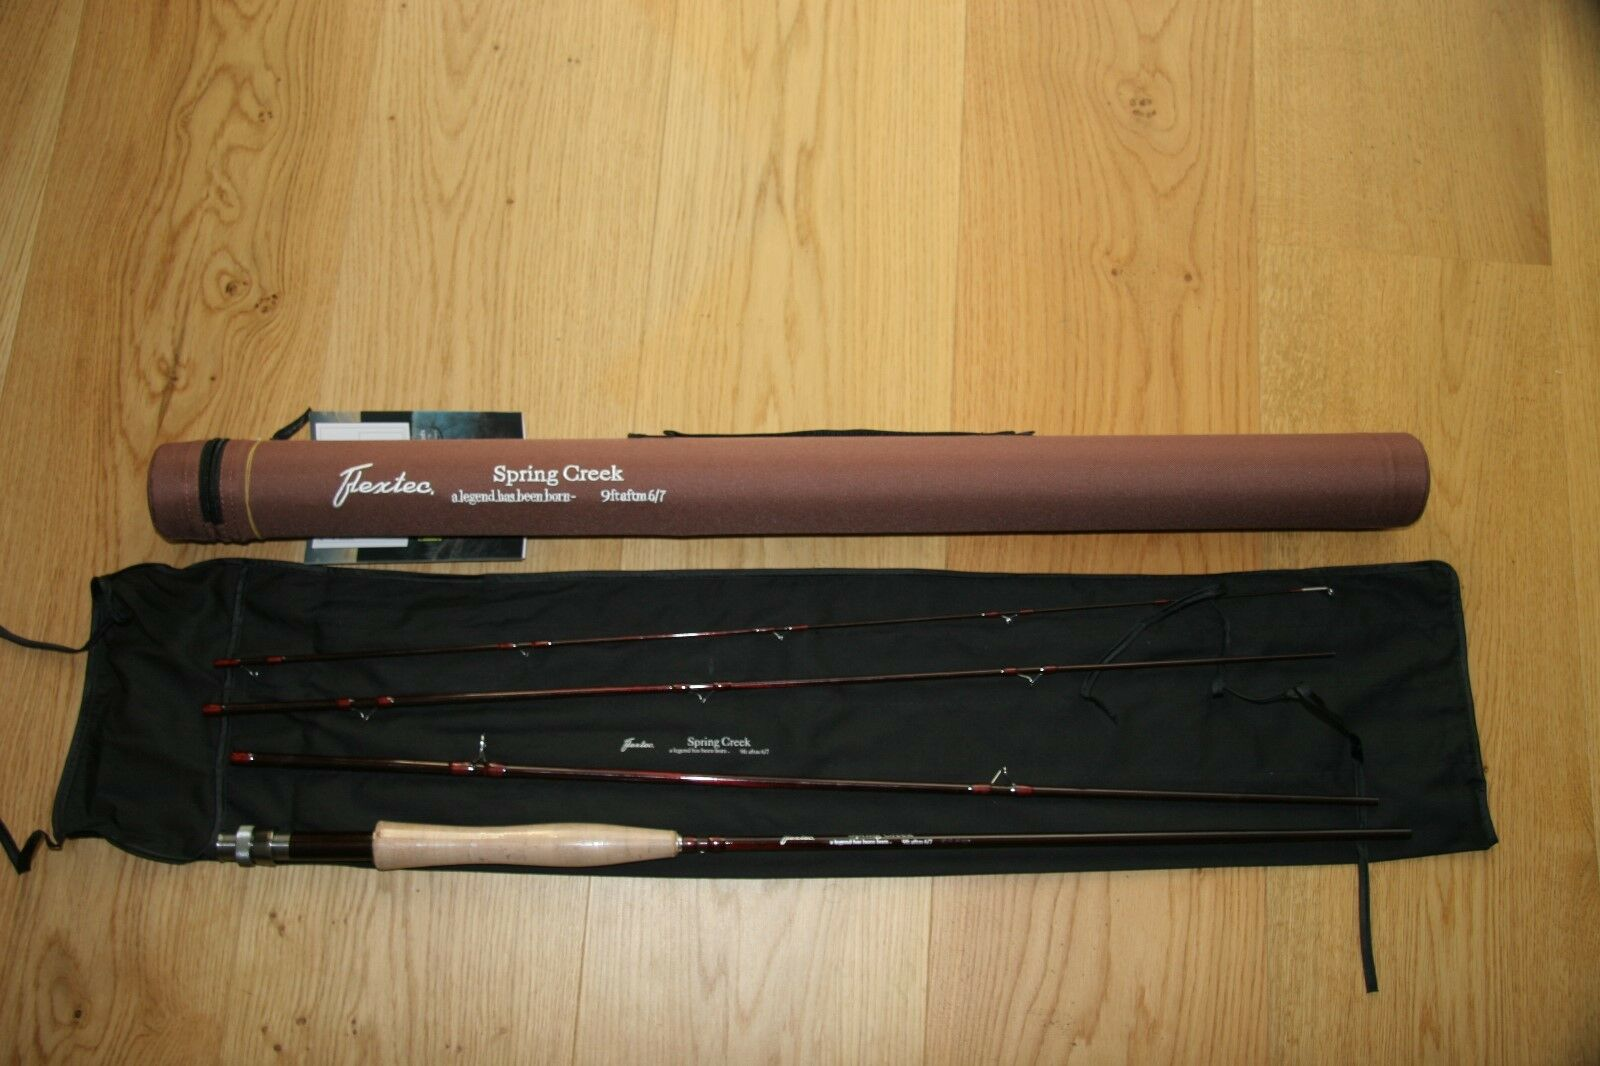 Flextec Spring Creek Trout Fly Fishing Rod 9ft AFTM 7/8 7/8 7/8 Hard Cordura Case 55ba25